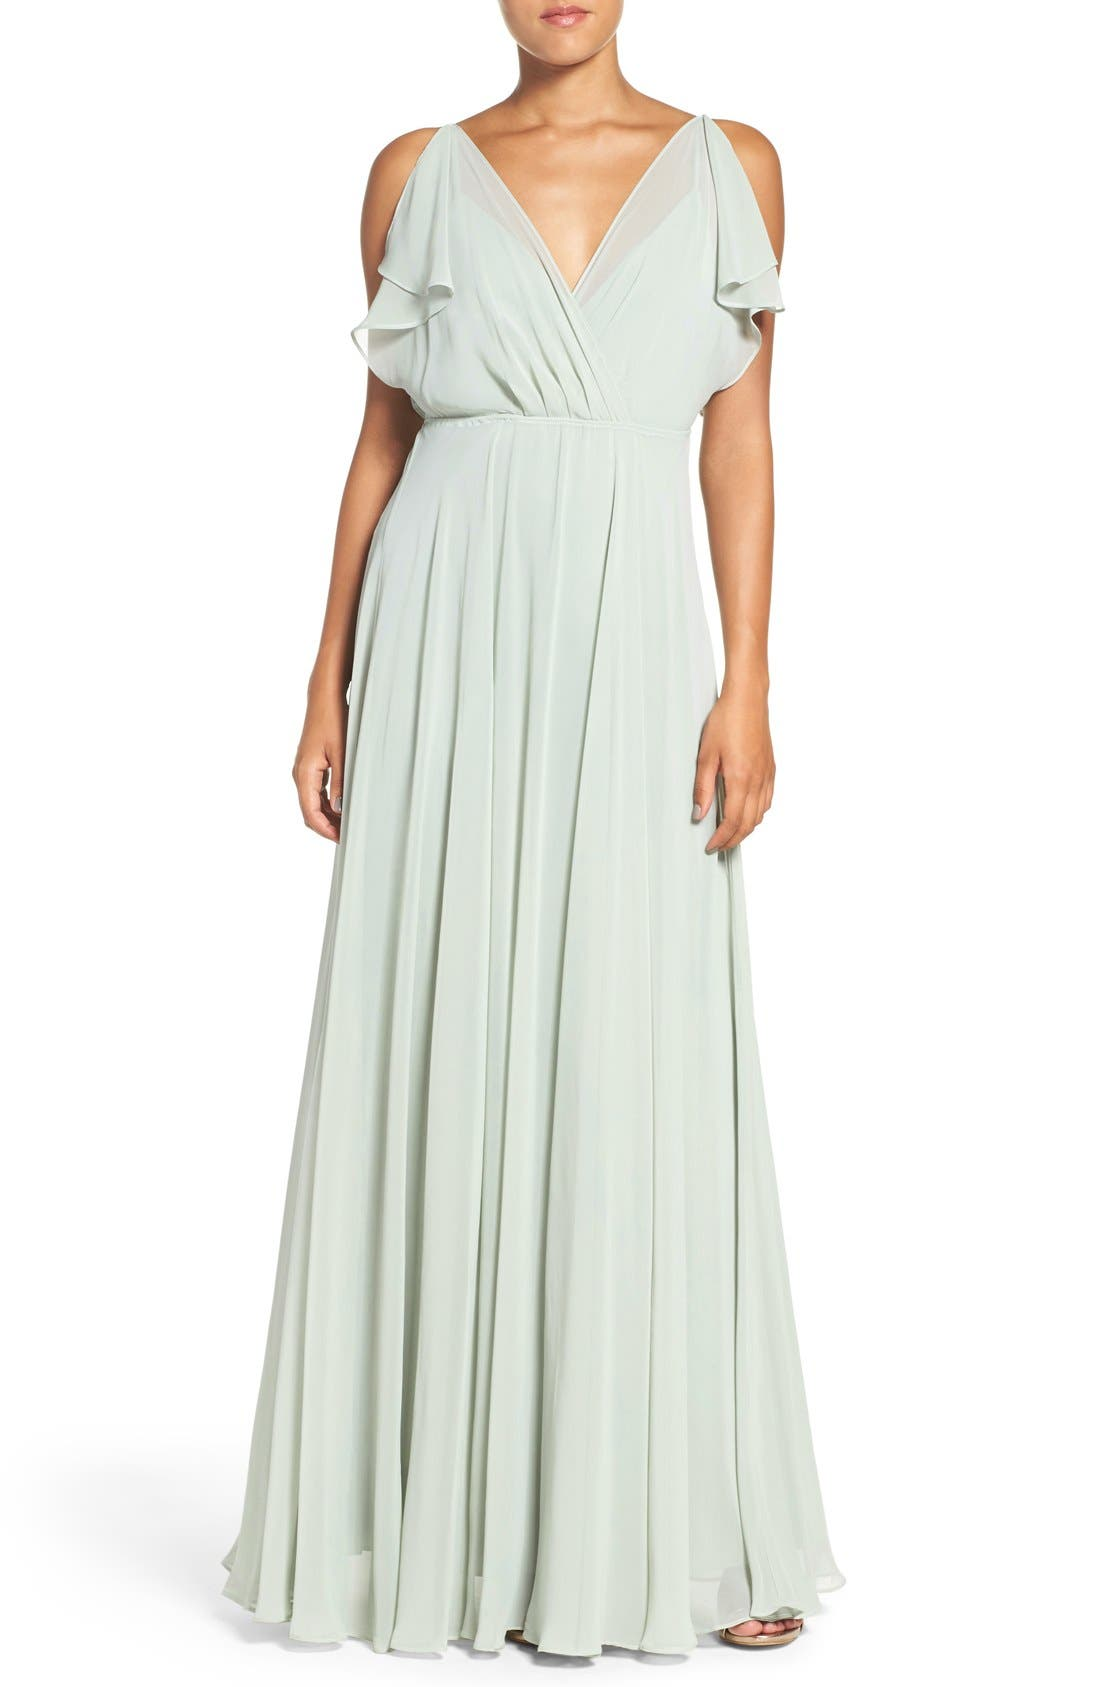 Alternate Image 1 Selected - Jenny Yoo 'Cassie' Flutter Sleeve Chiffon A-Line Gown